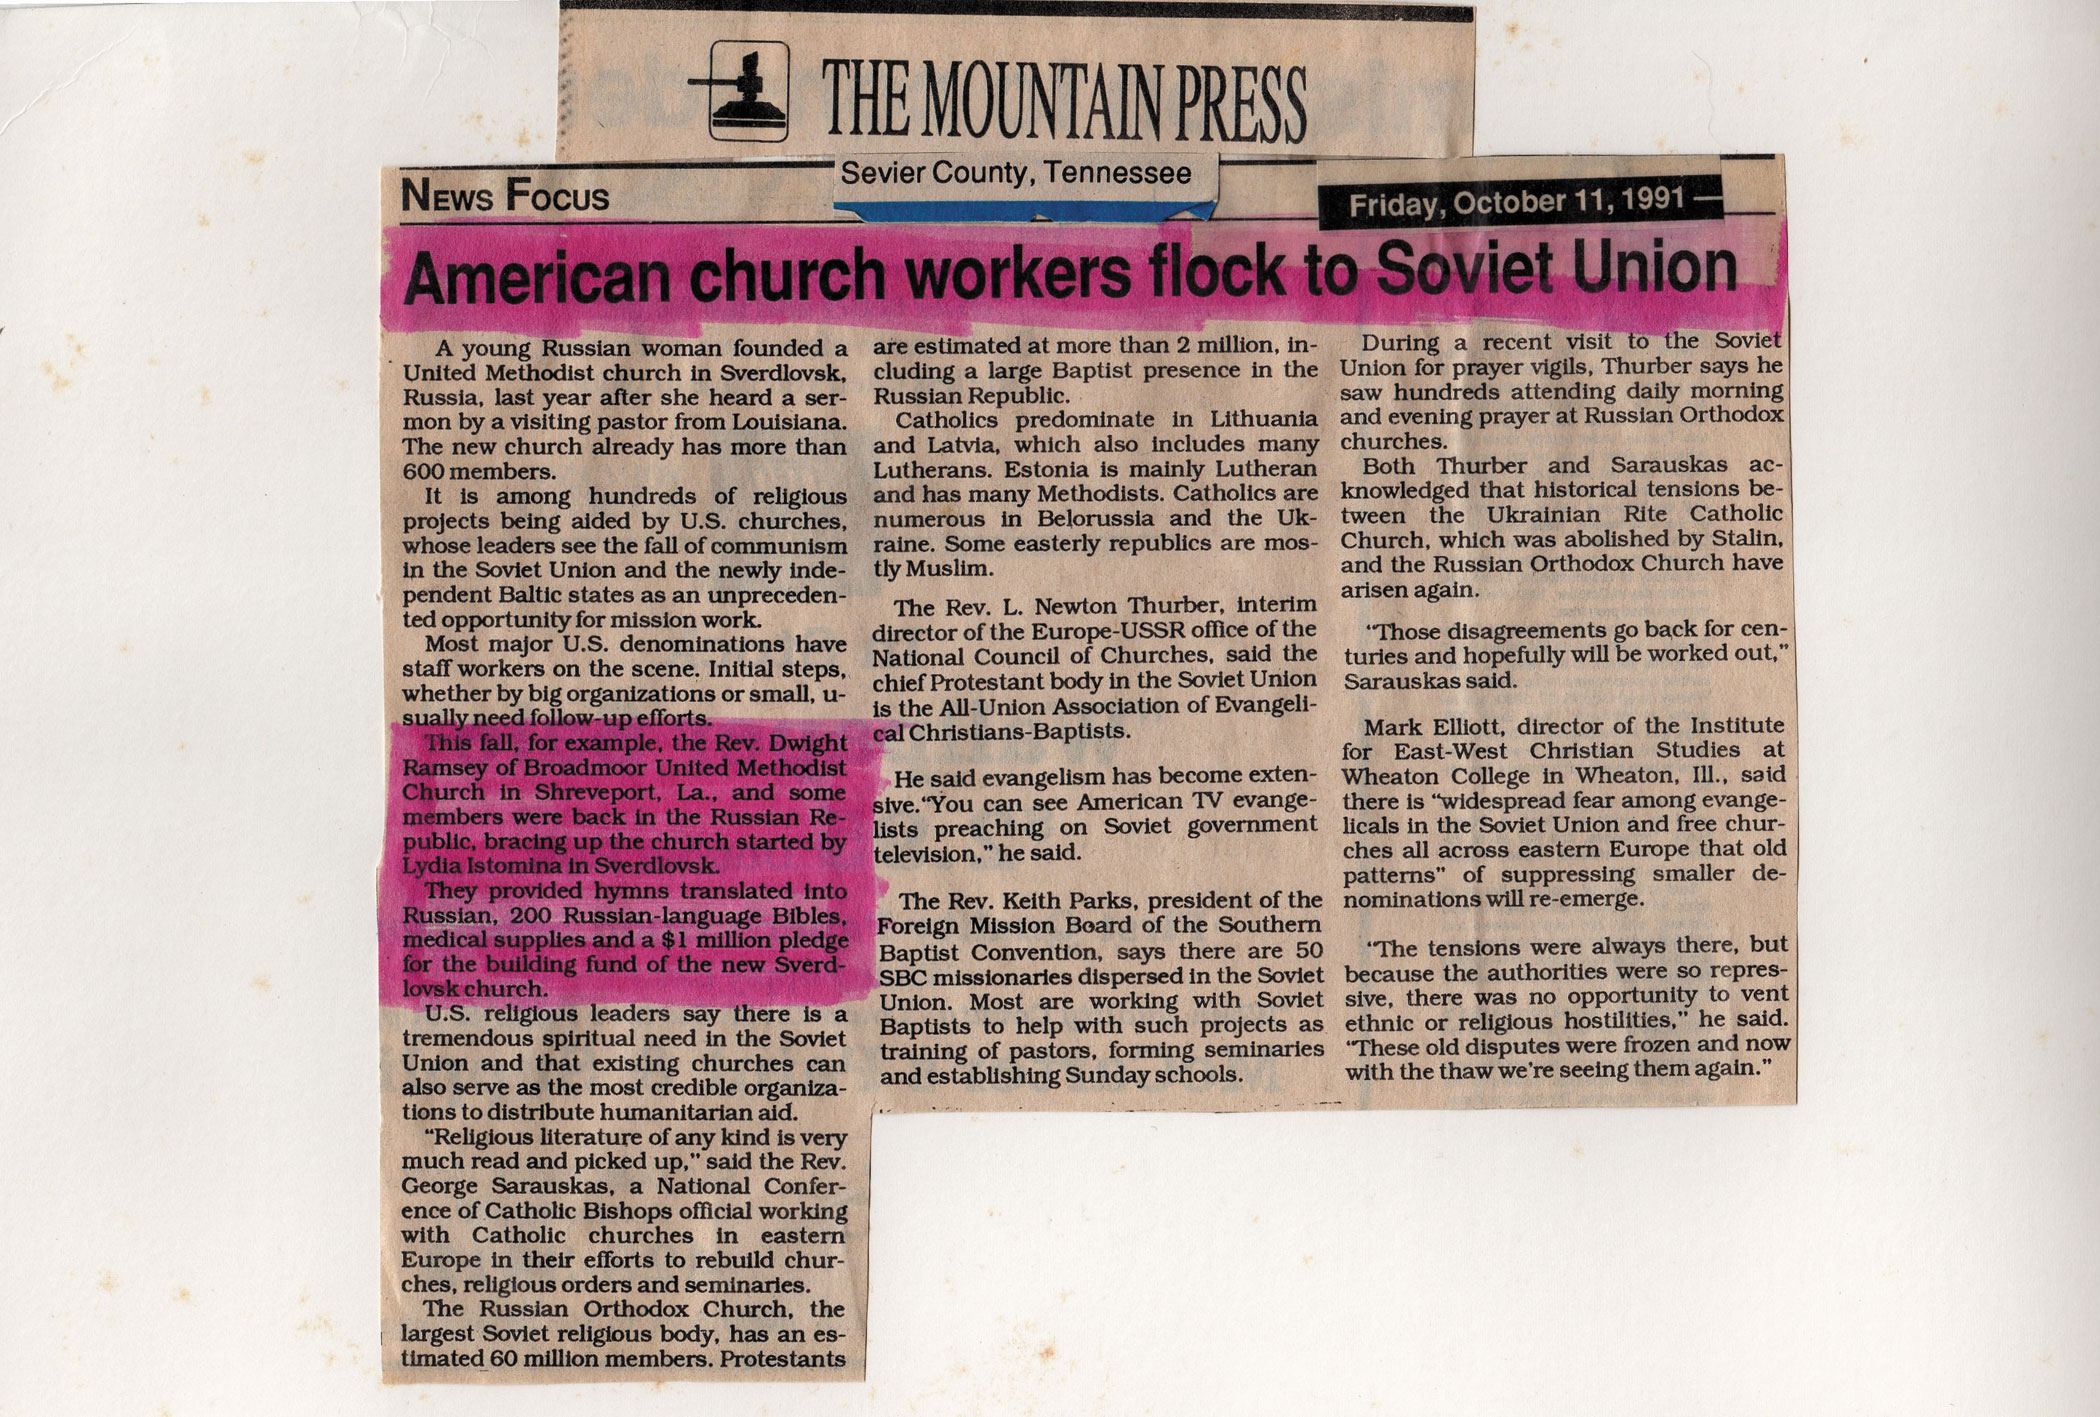 American Church Workers Flock to Soviet Union - Oct 1, 1991, The Mountain Press